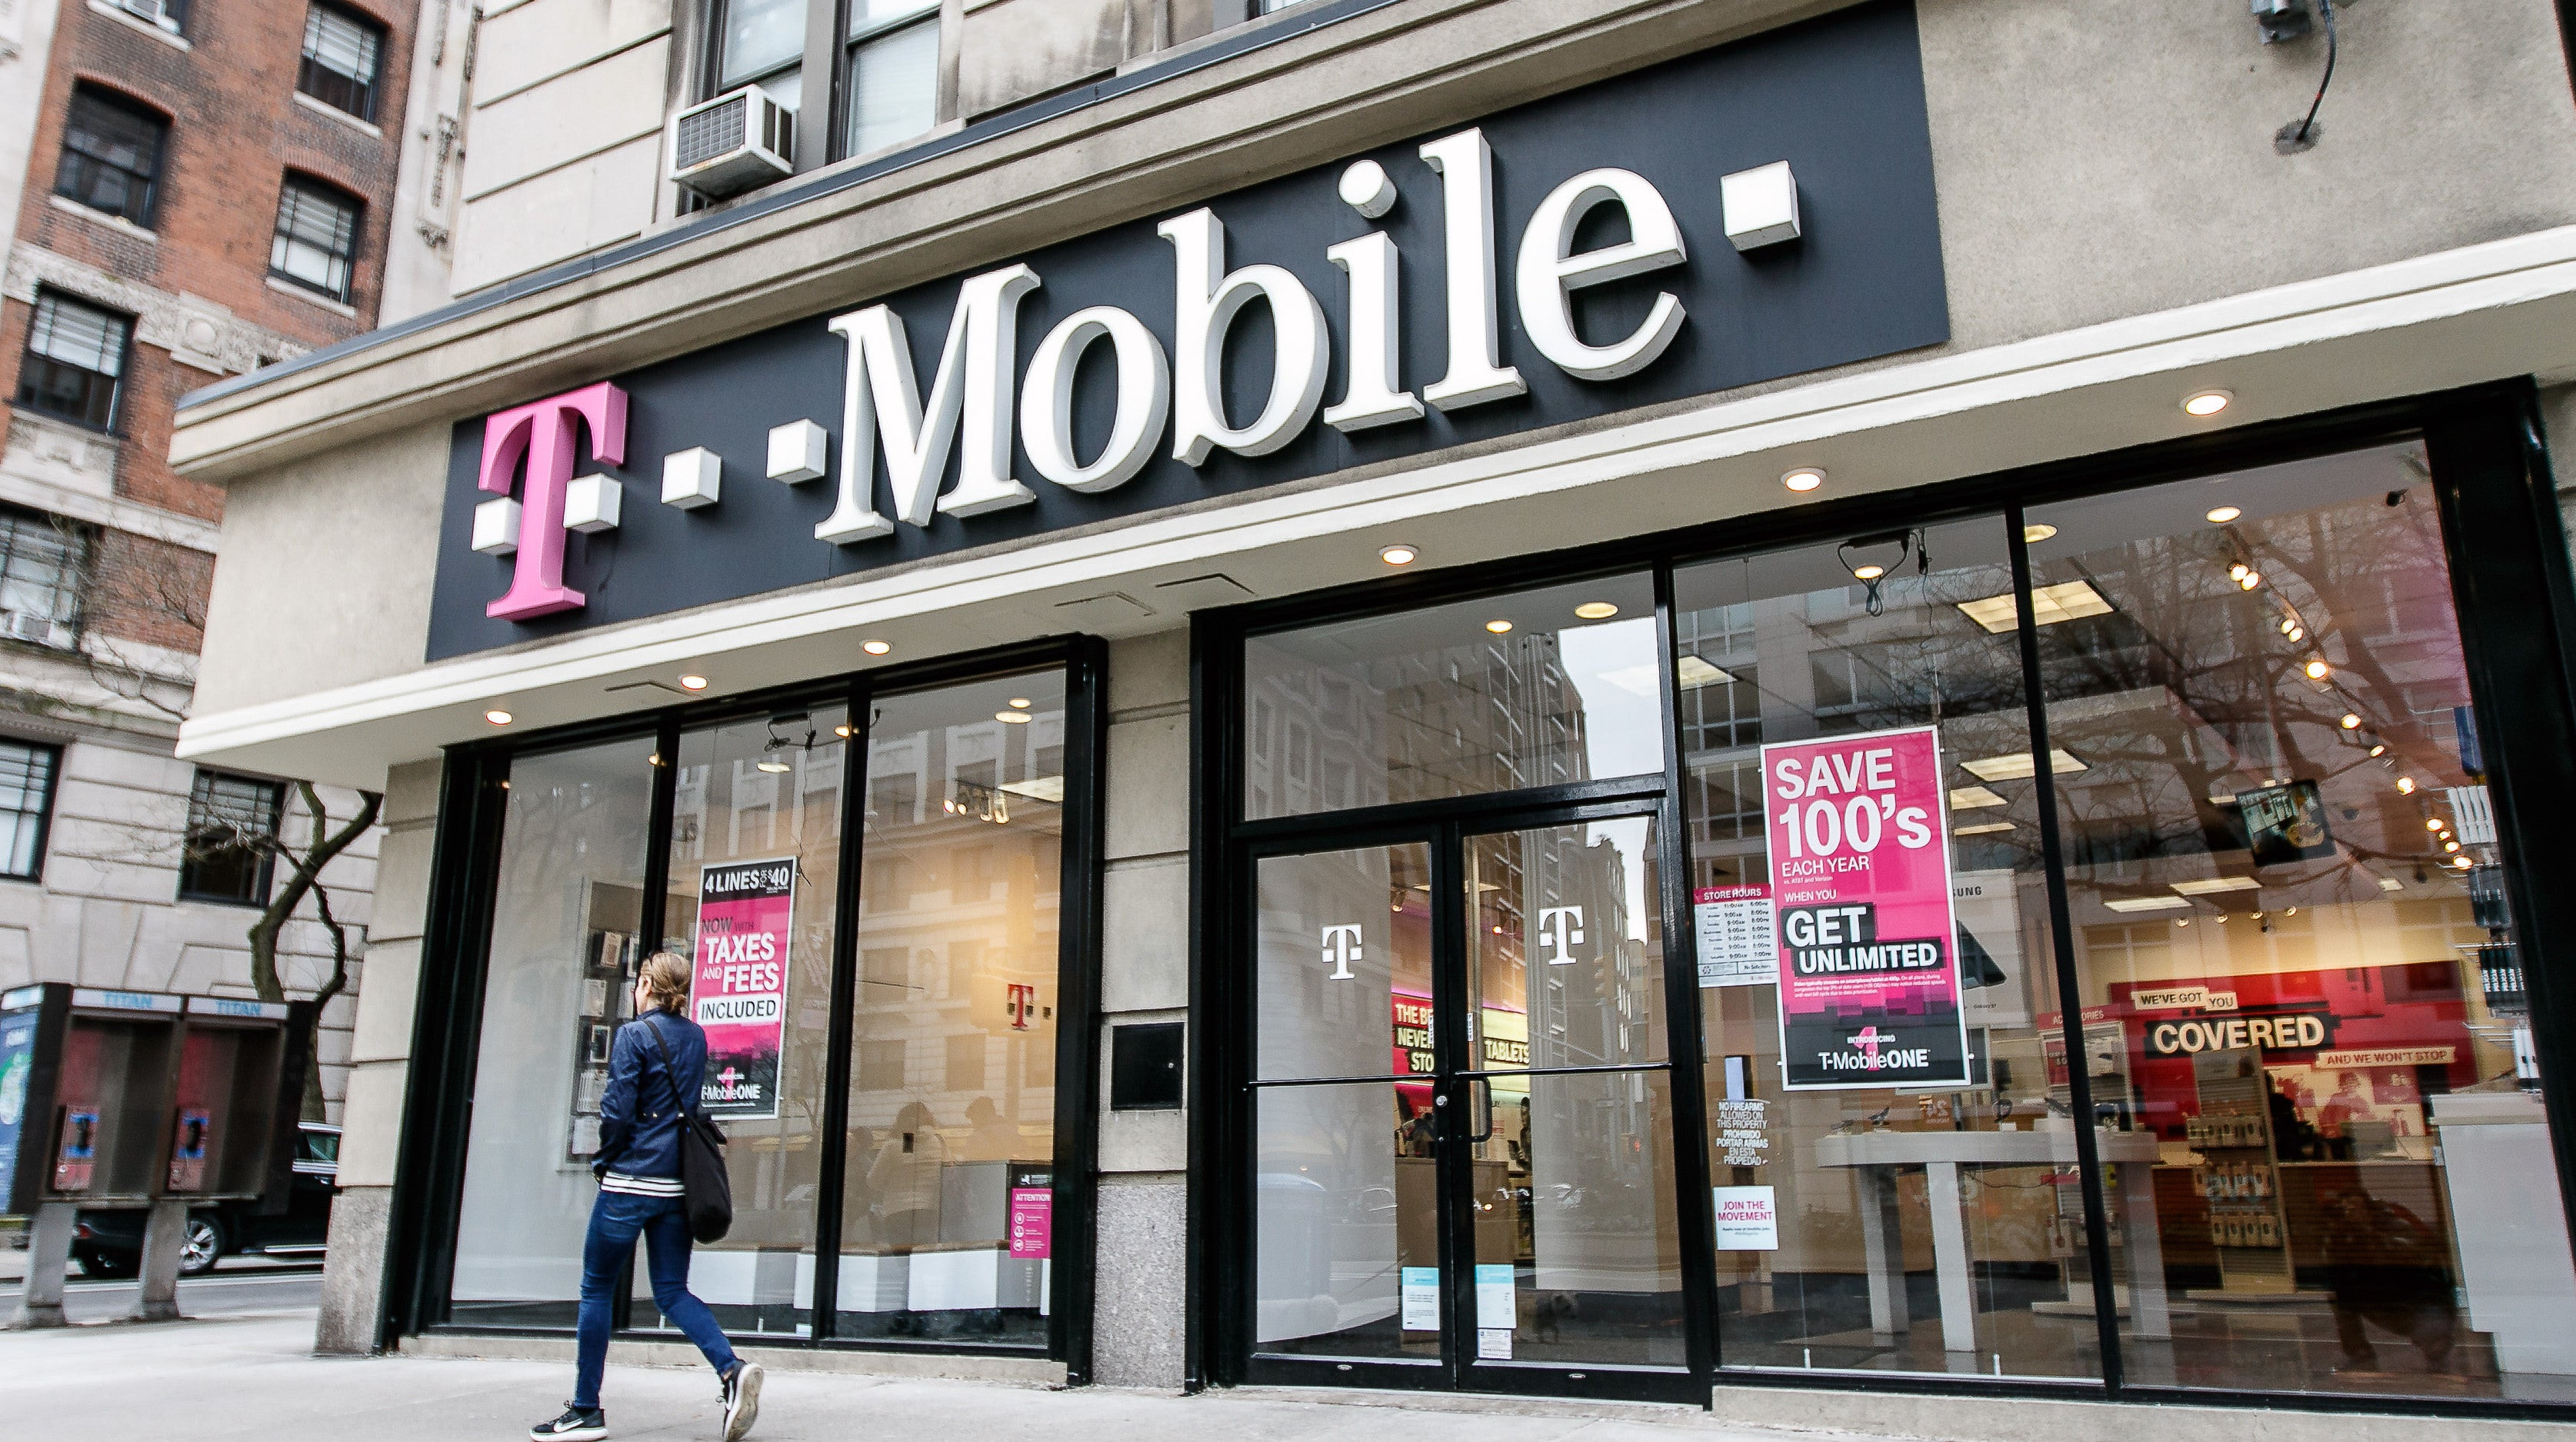 How To Get Free T-Mobile Service If You're A First Responder